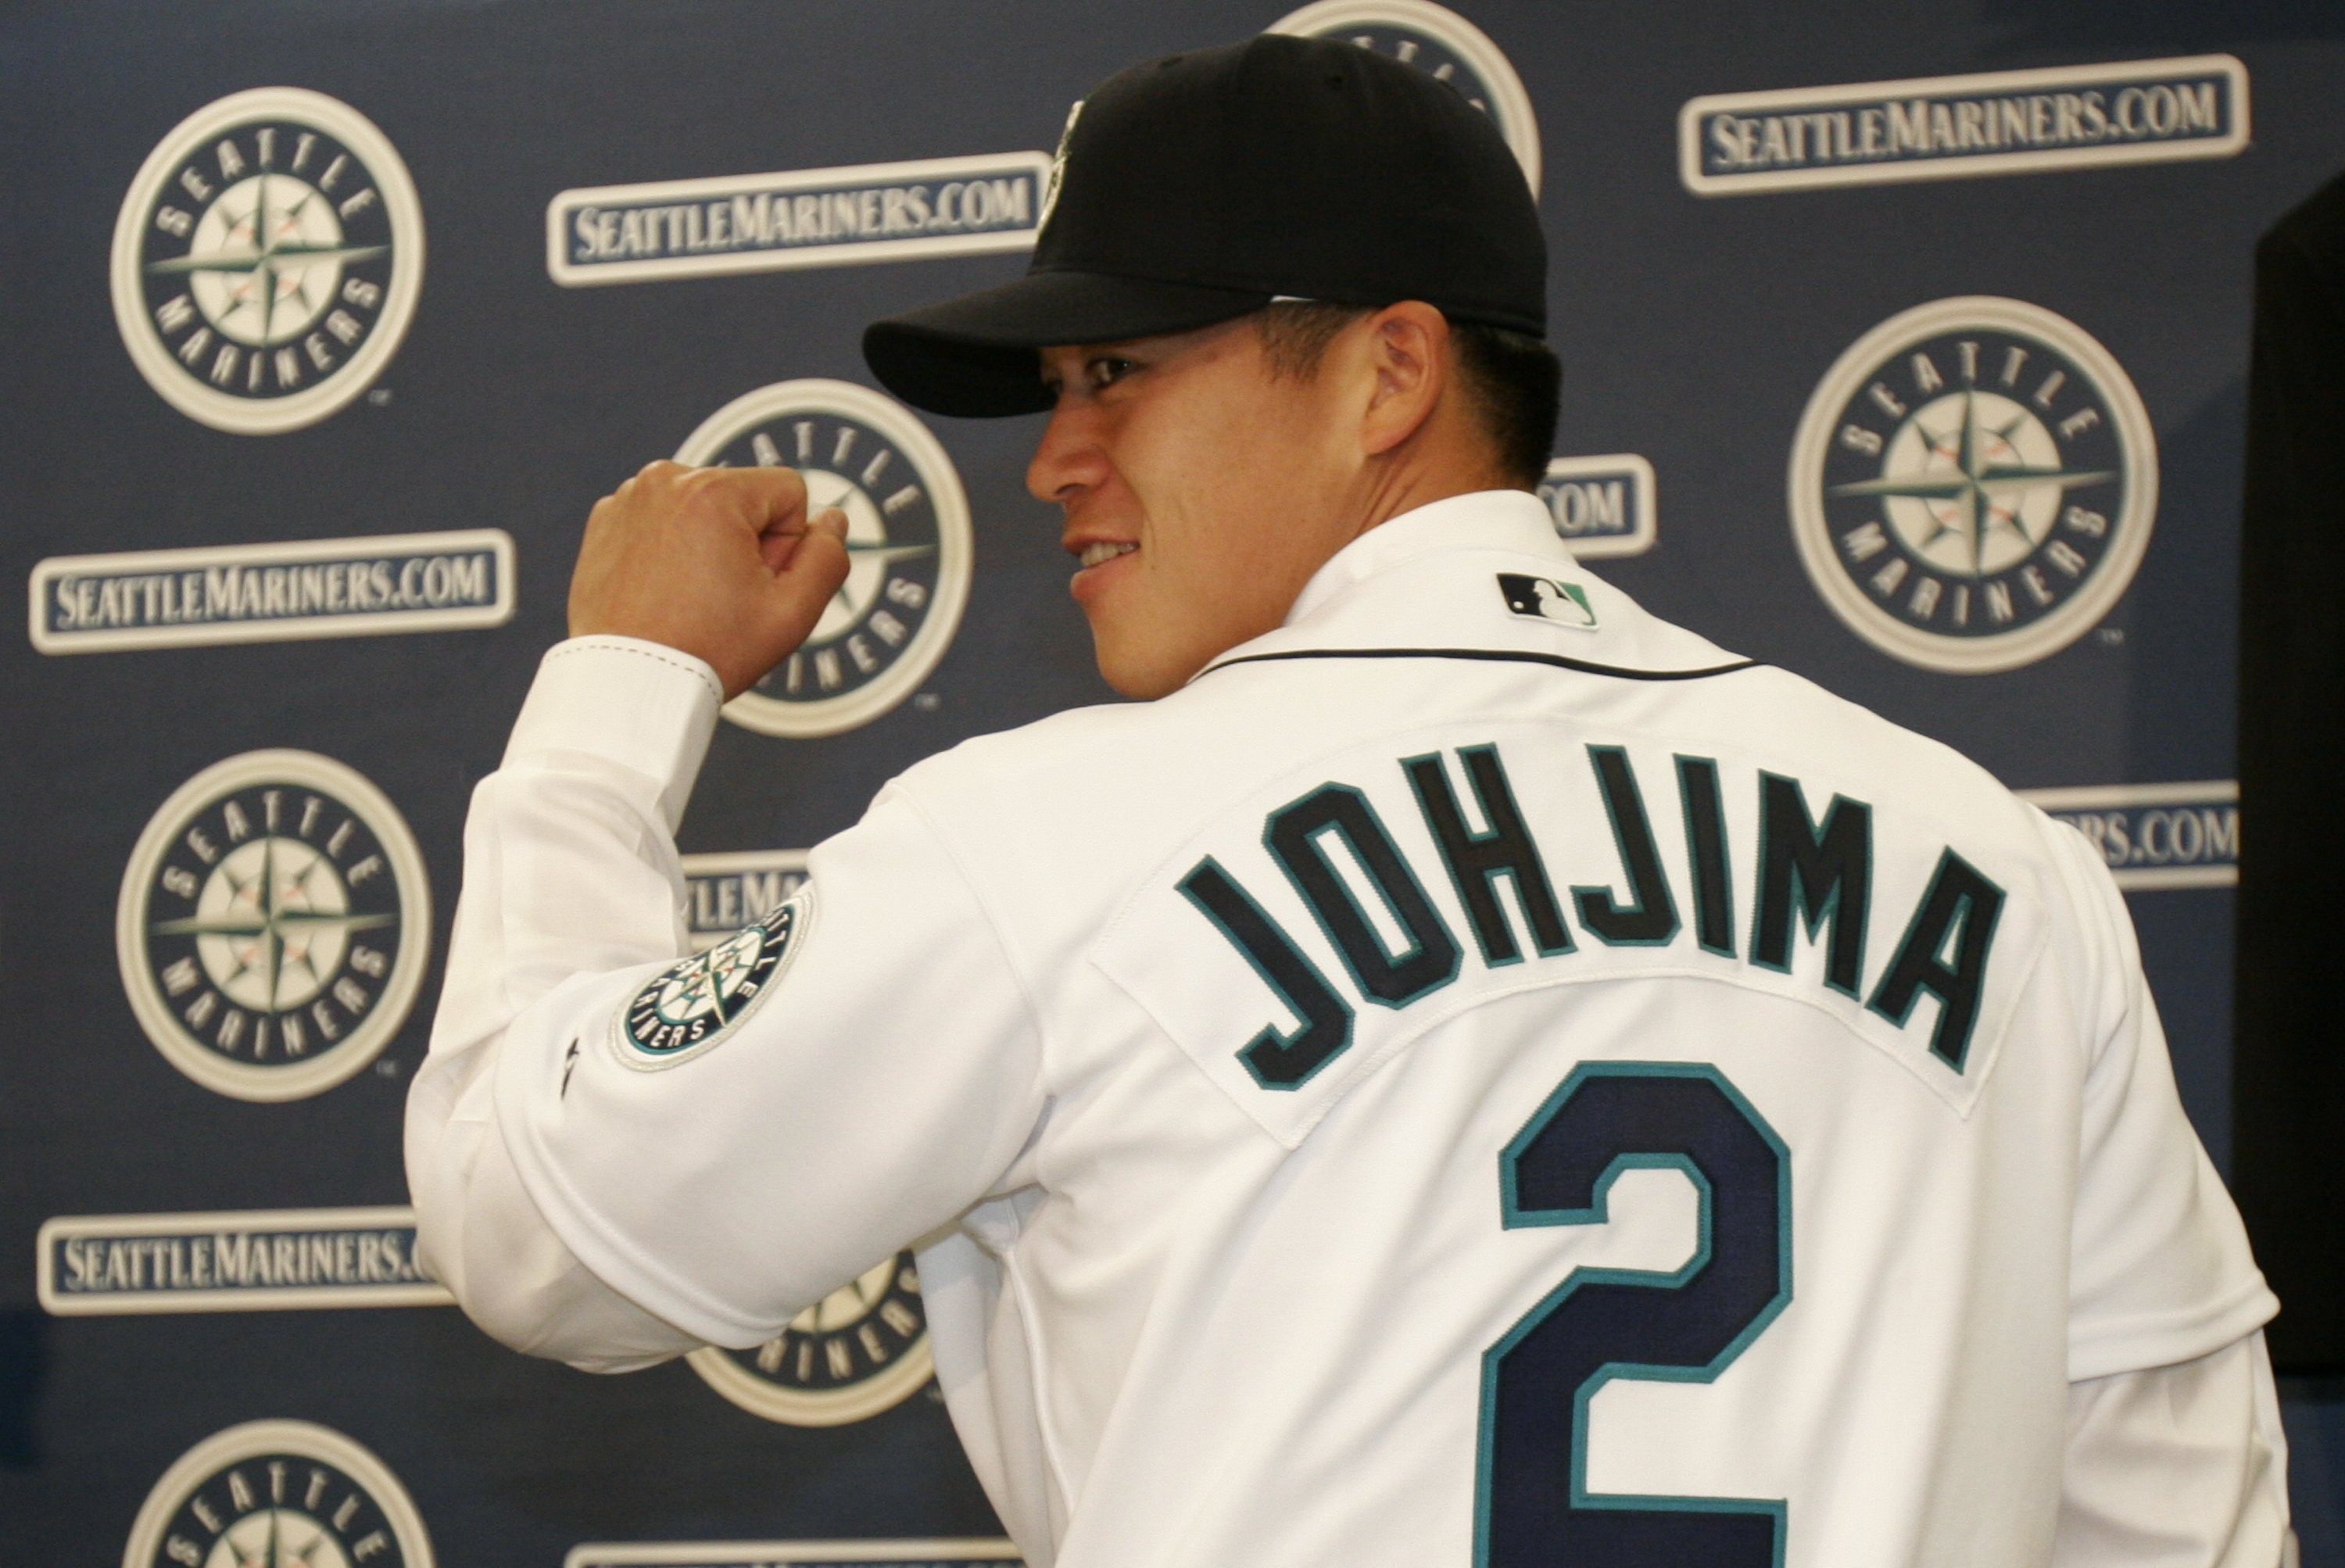 Seattle Mariners: Kenji Johjima Retires as Time Catches Up to Him ...